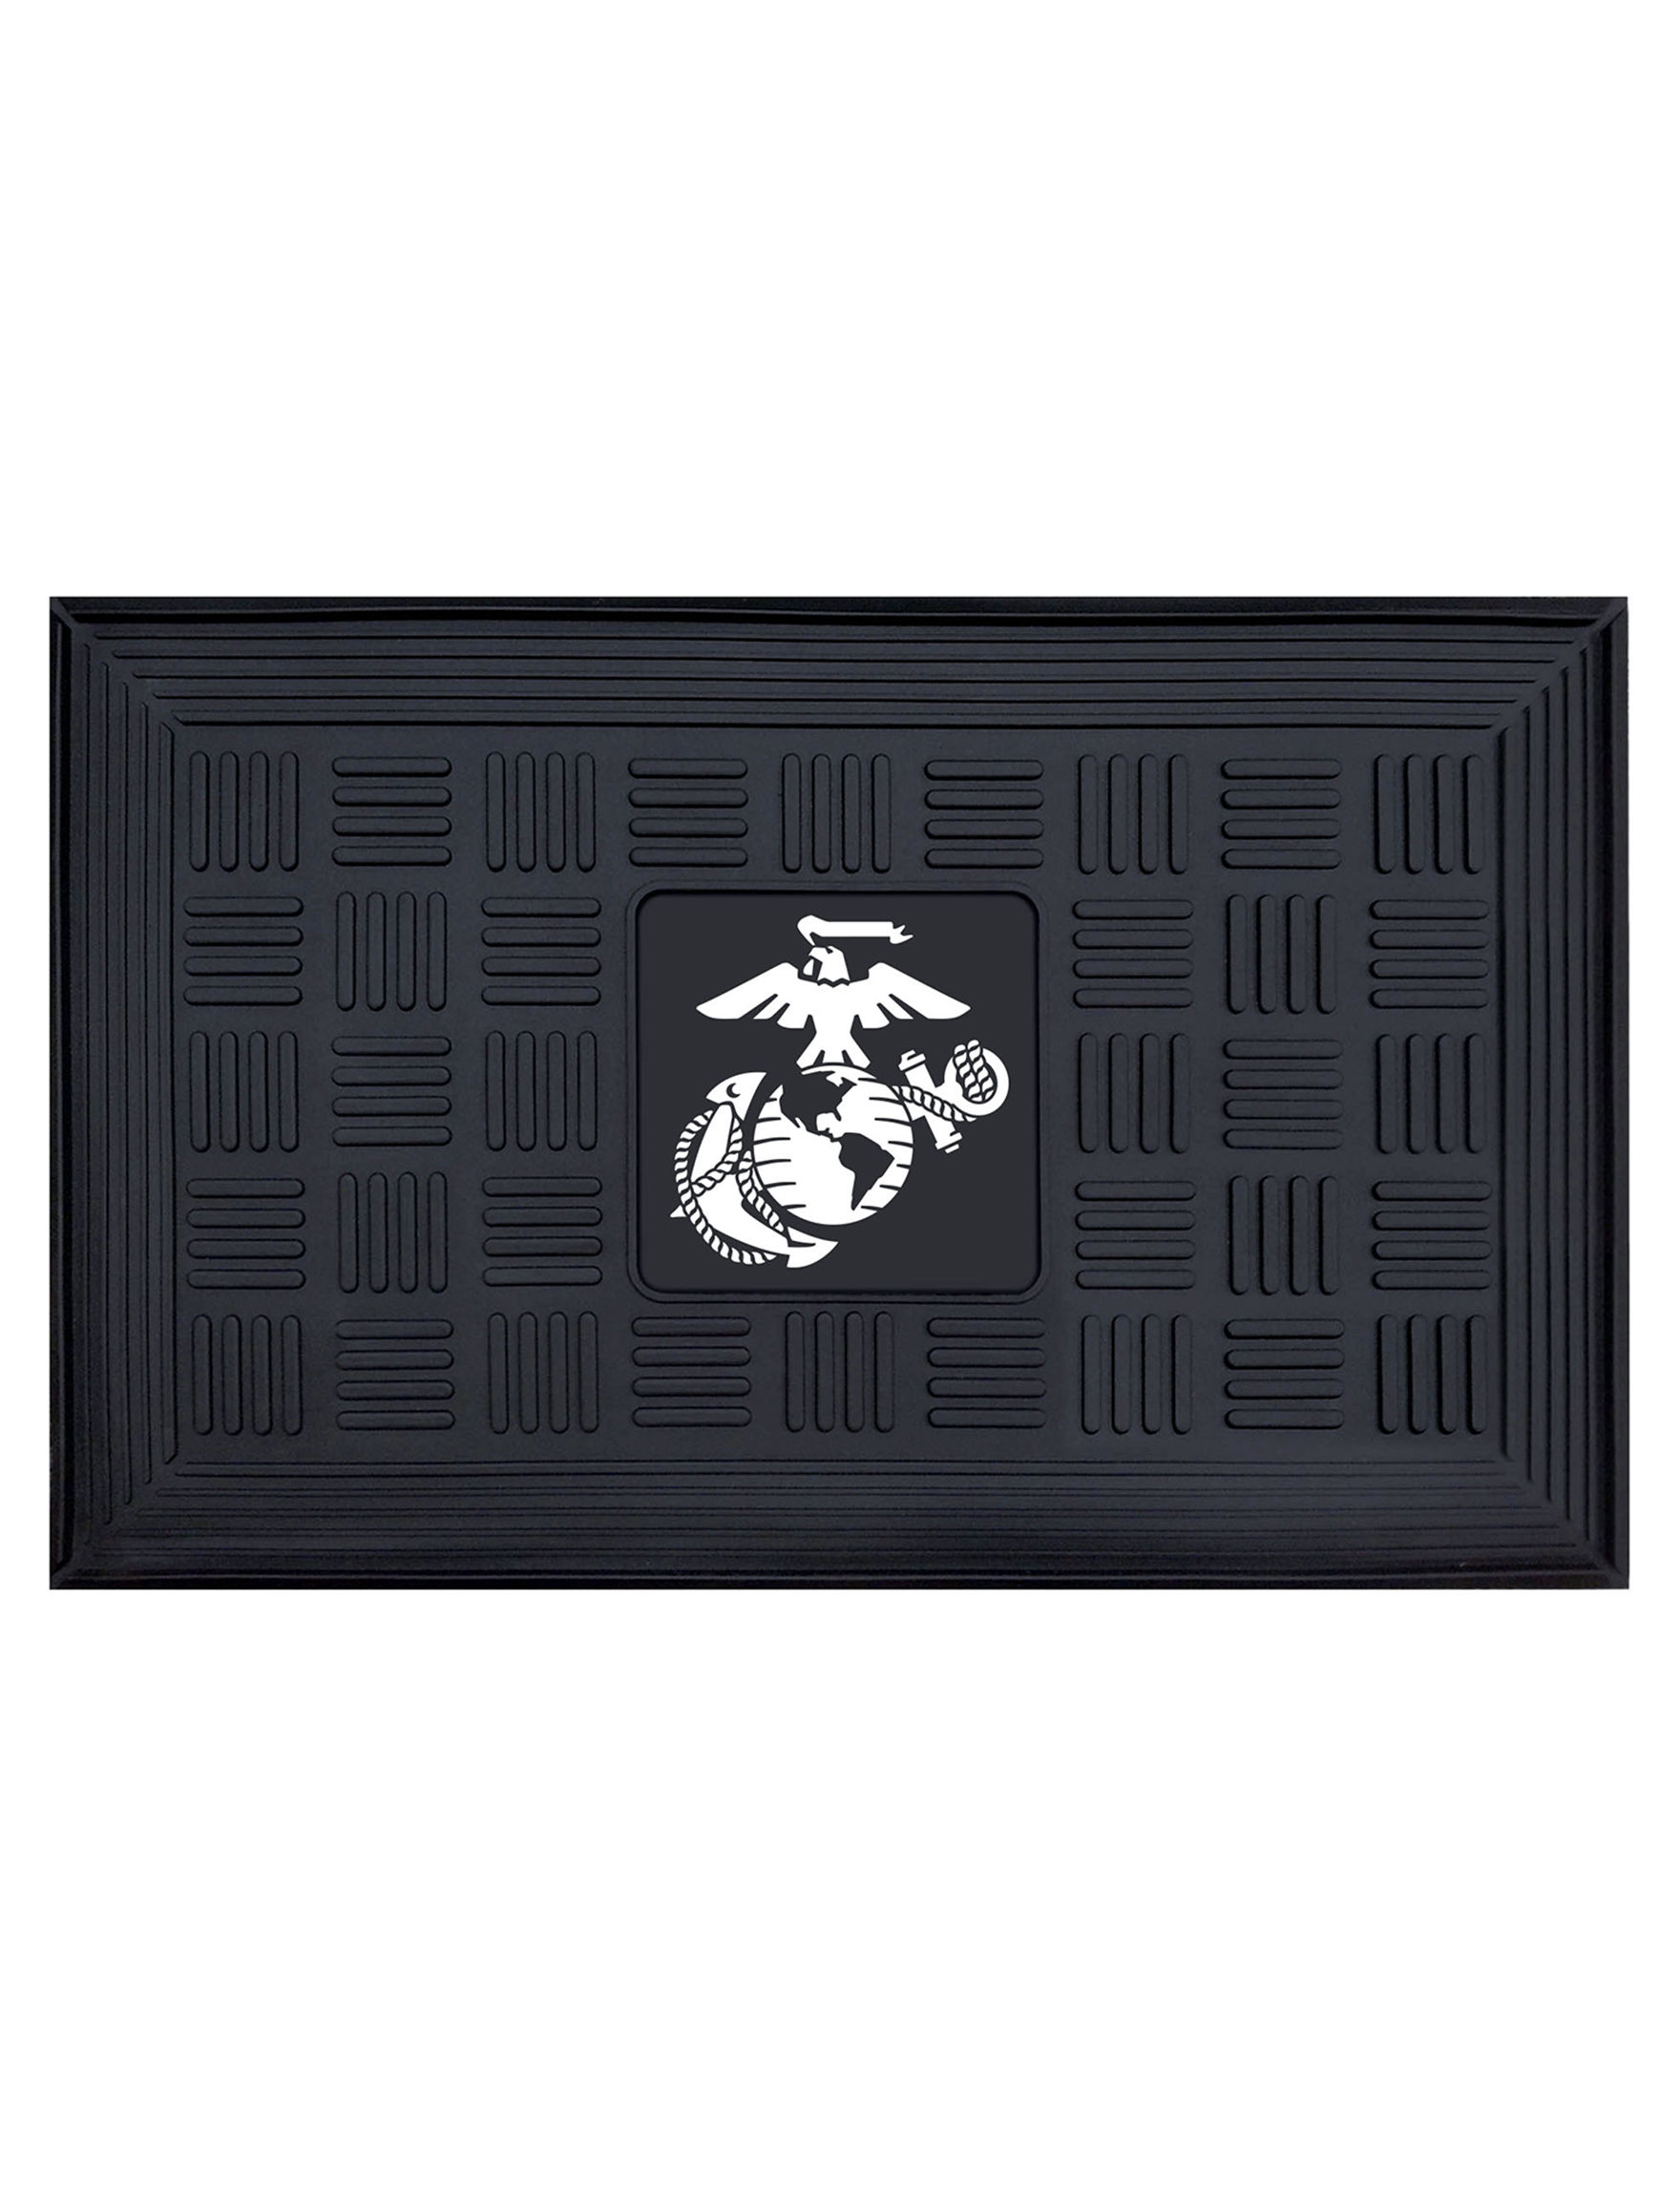 Fanmats Black Outdoor Rugs & Doormats Outdoor Decor